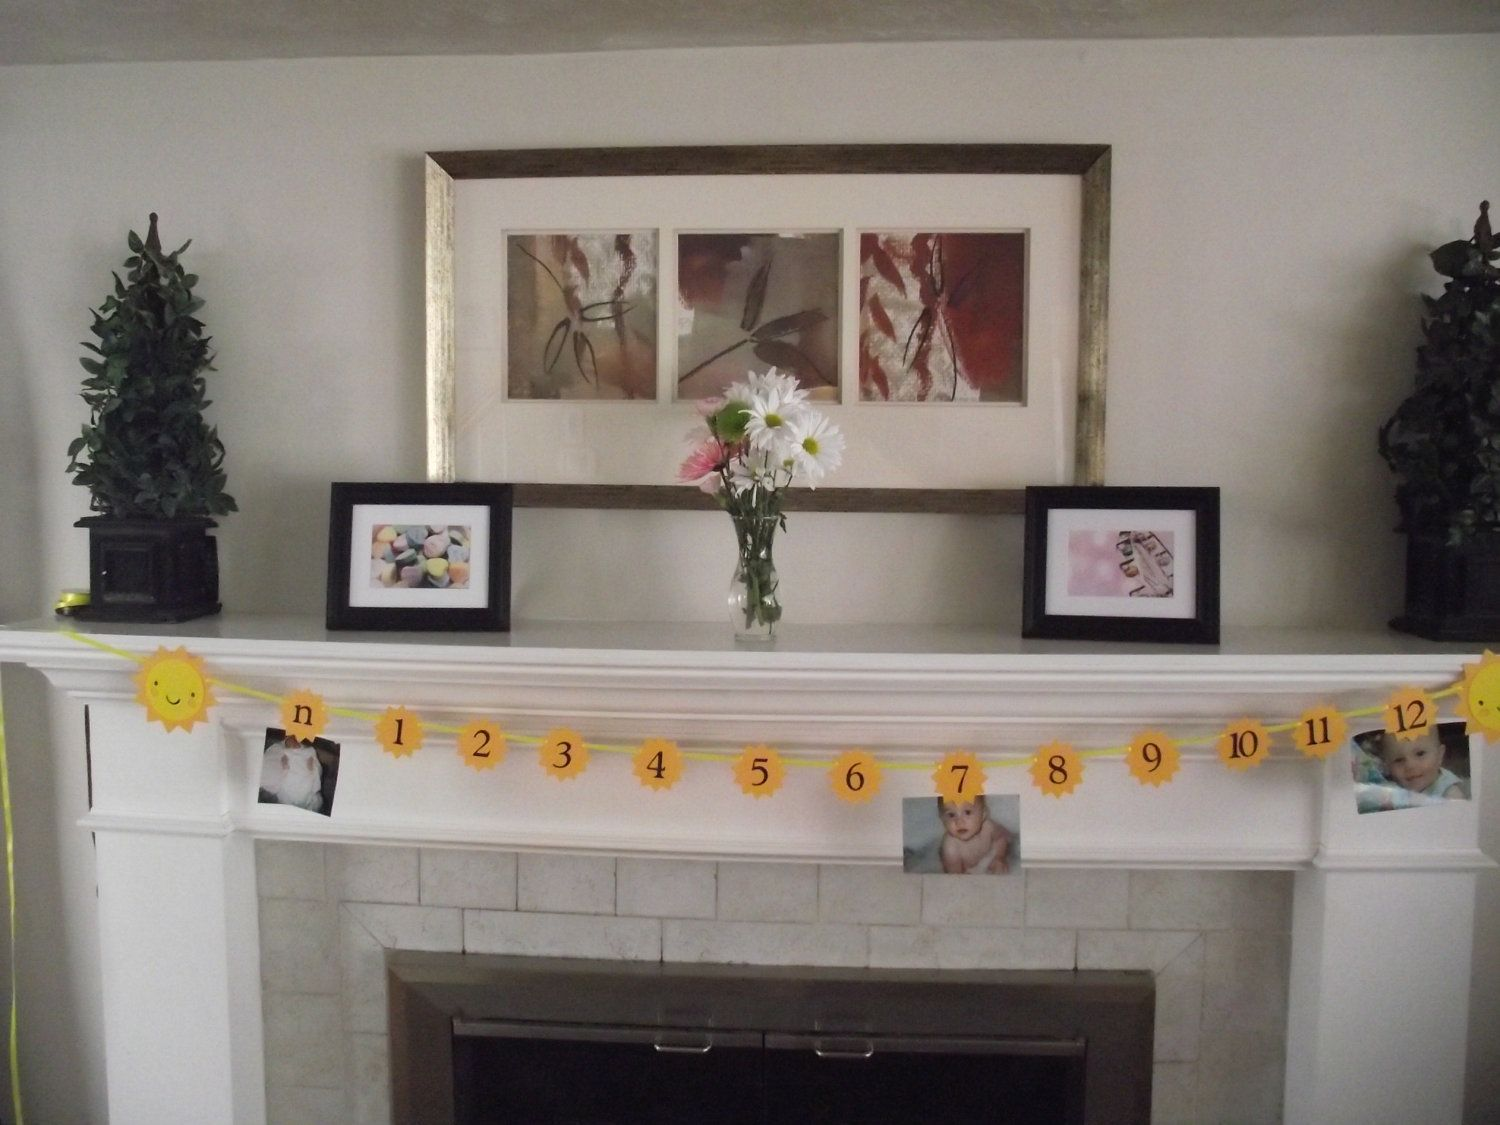 Childs First Year Picture Banner - Sunshine theme - You are my sunshine, Birthday Girl, Birthday Boy, Sun, Birthday Party Ideas